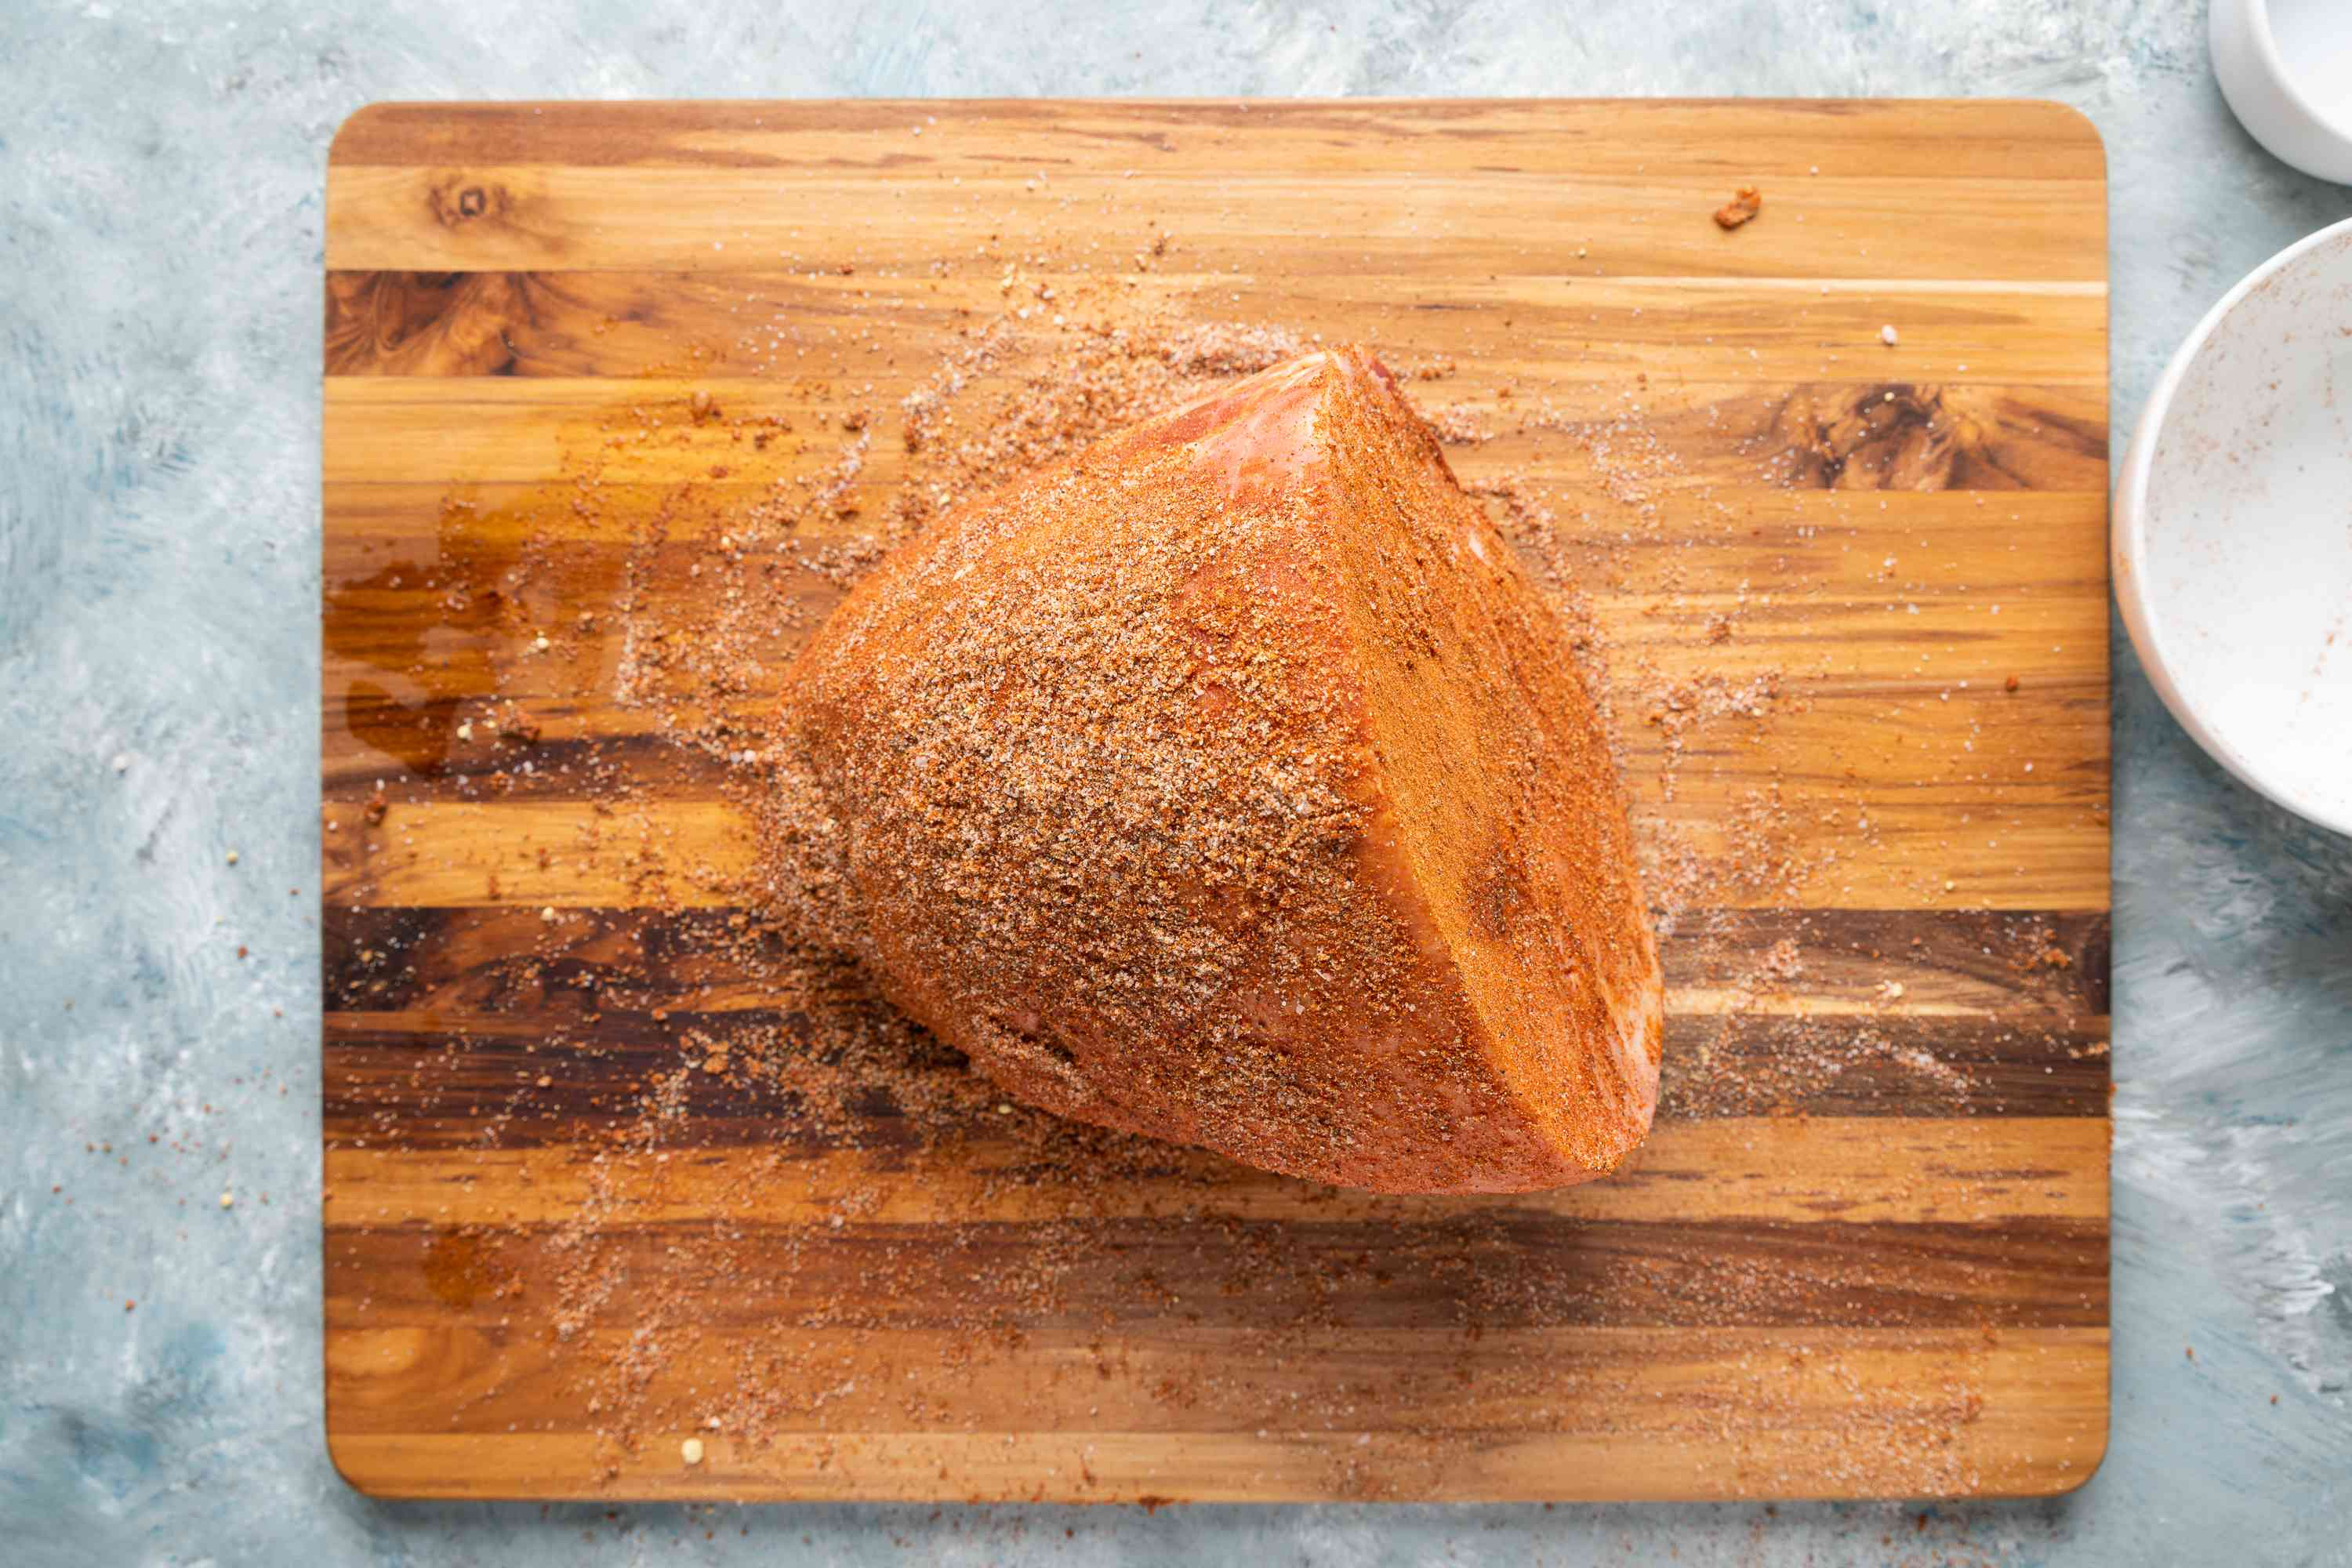 Ham covered with dry rub on a wooden cutting board